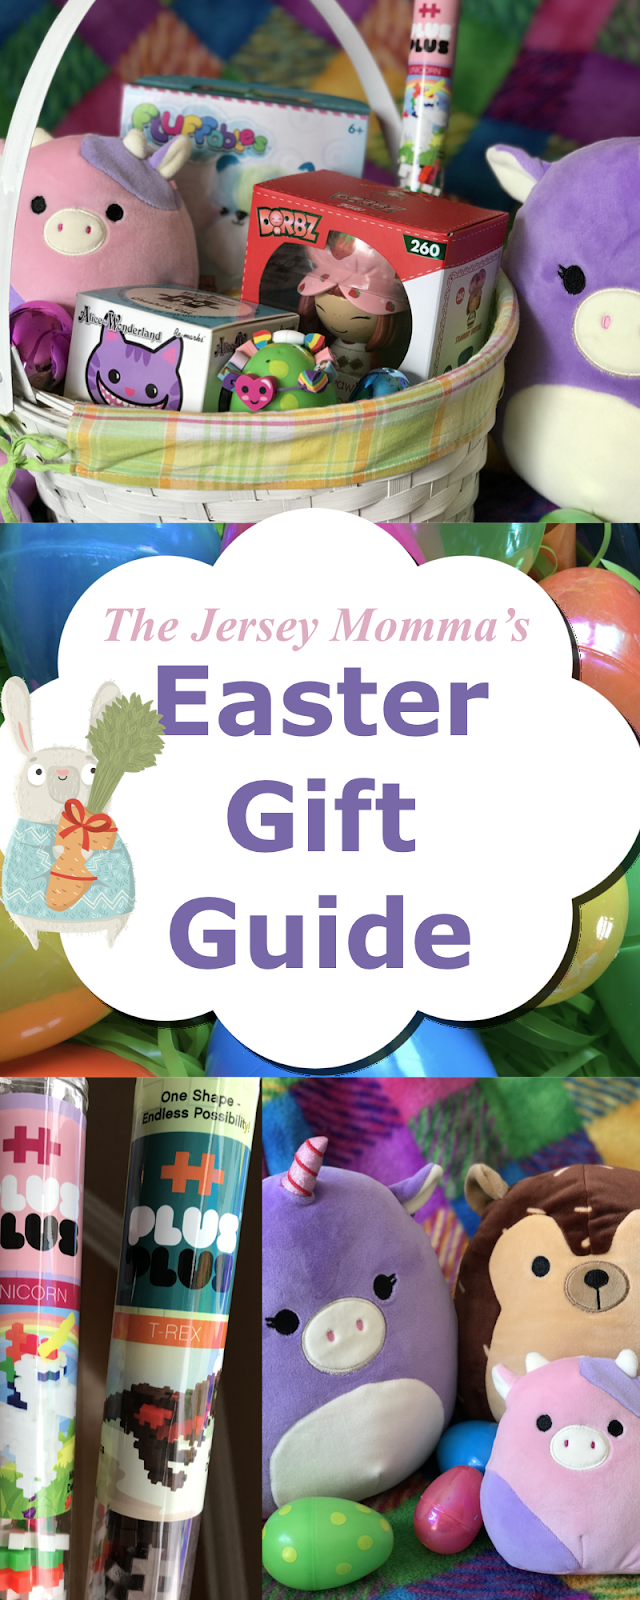 The jersey momma easter gift guide non candy easter basket gift lets face it its not always easy to find the right easter gifts especially as the years go by the easter bunny is tired i hear ya negle Images